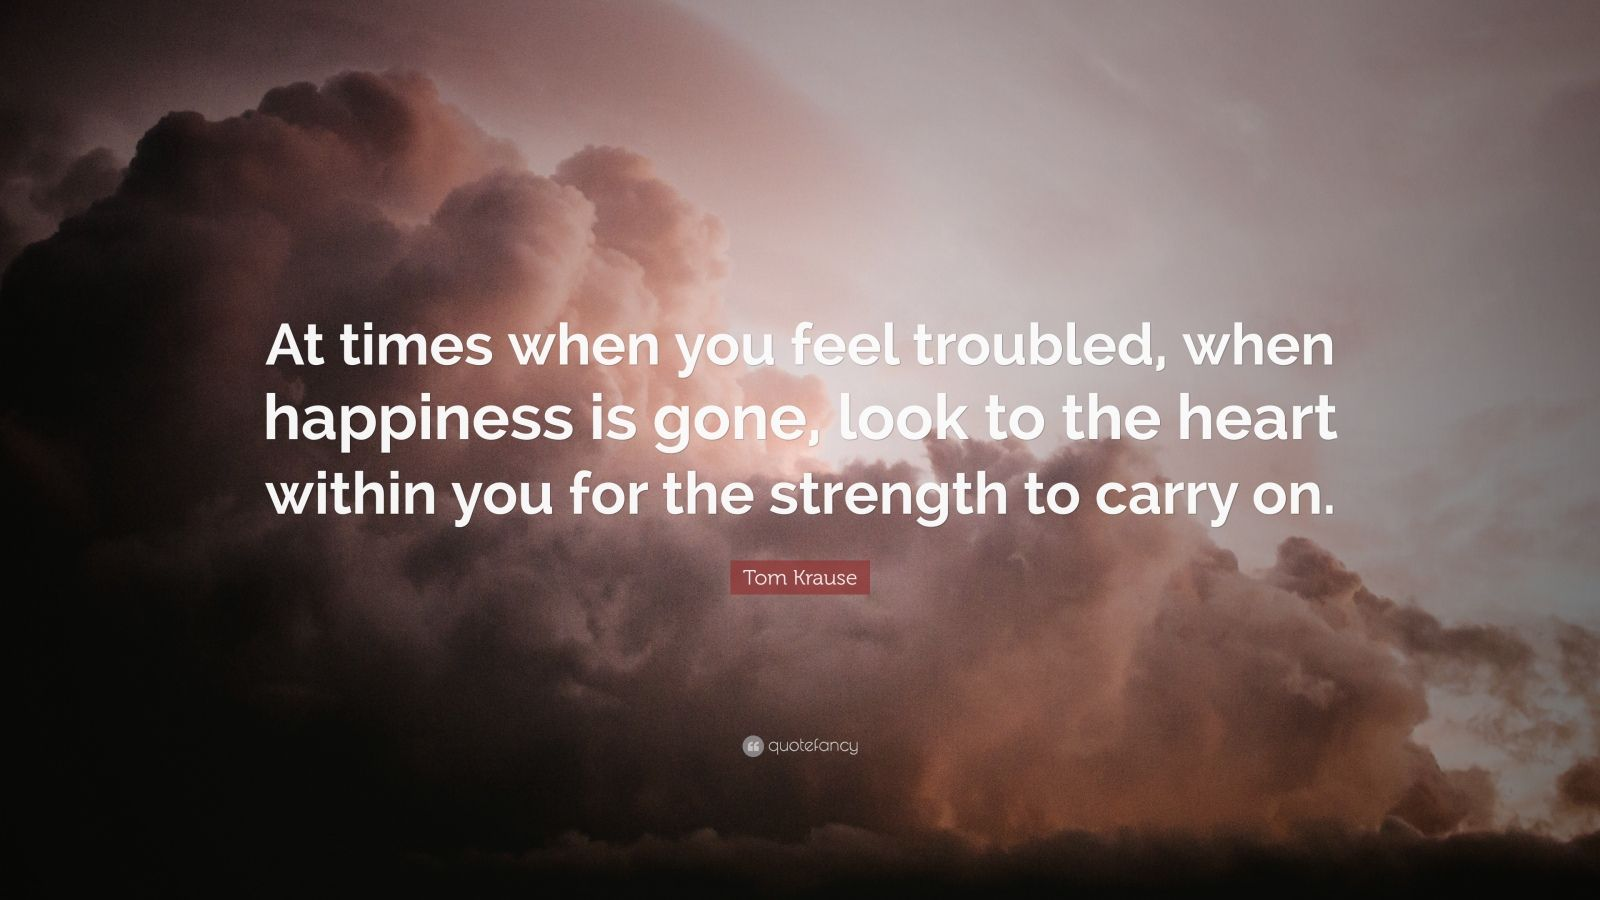 """Tom Krause Quote: """"At times when you feel troubled, when happiness is gone, look to the heart within you for the strength to carry on."""""""